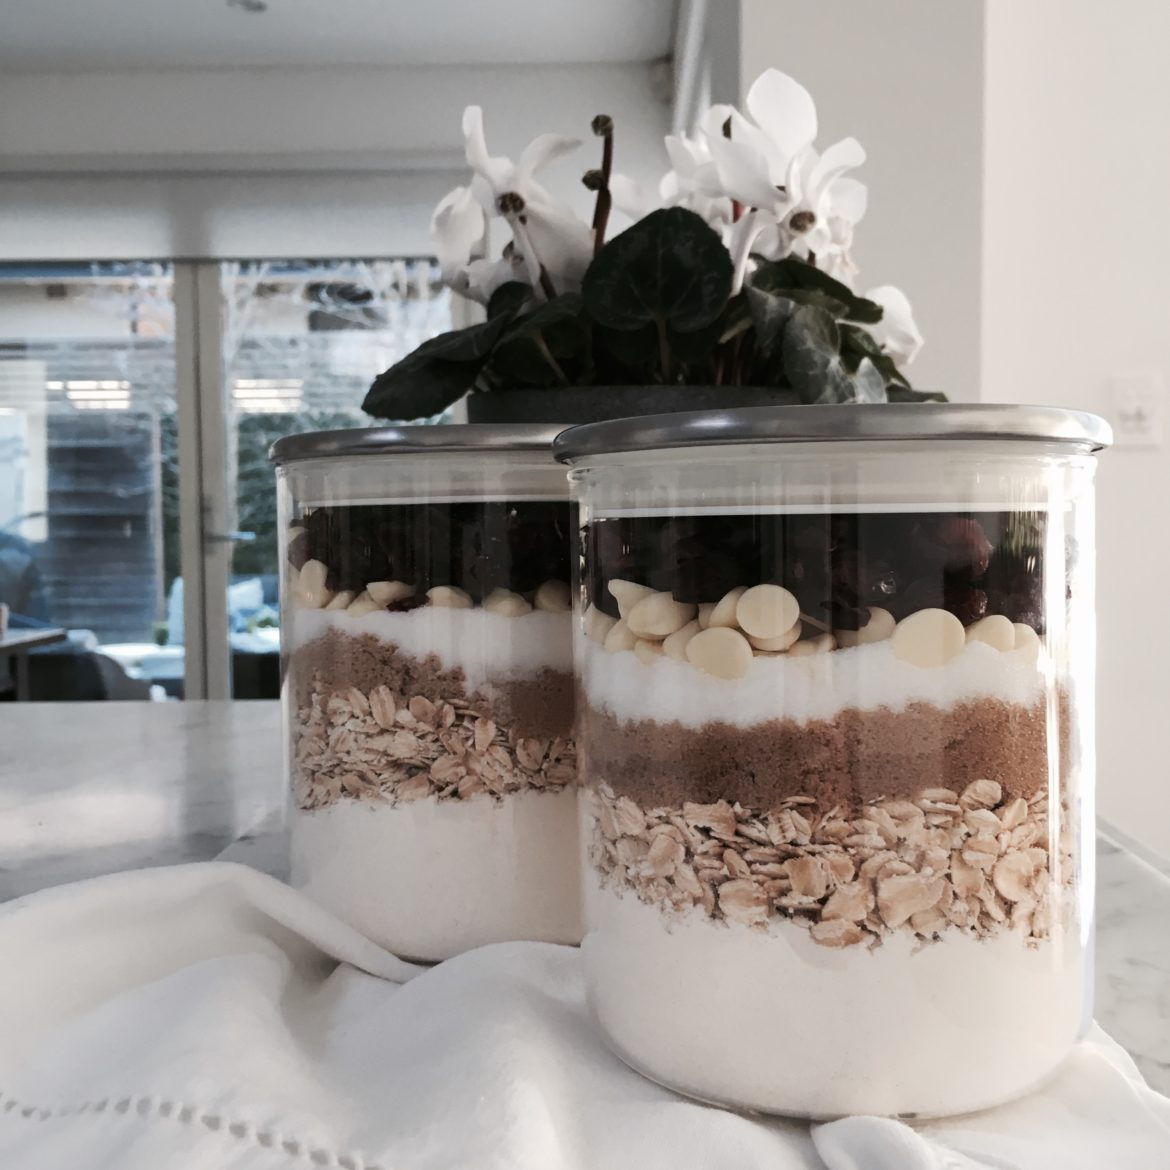 An image showing two jars of hand made cookie dough mix which could make a thoughtful gift for a new mum.